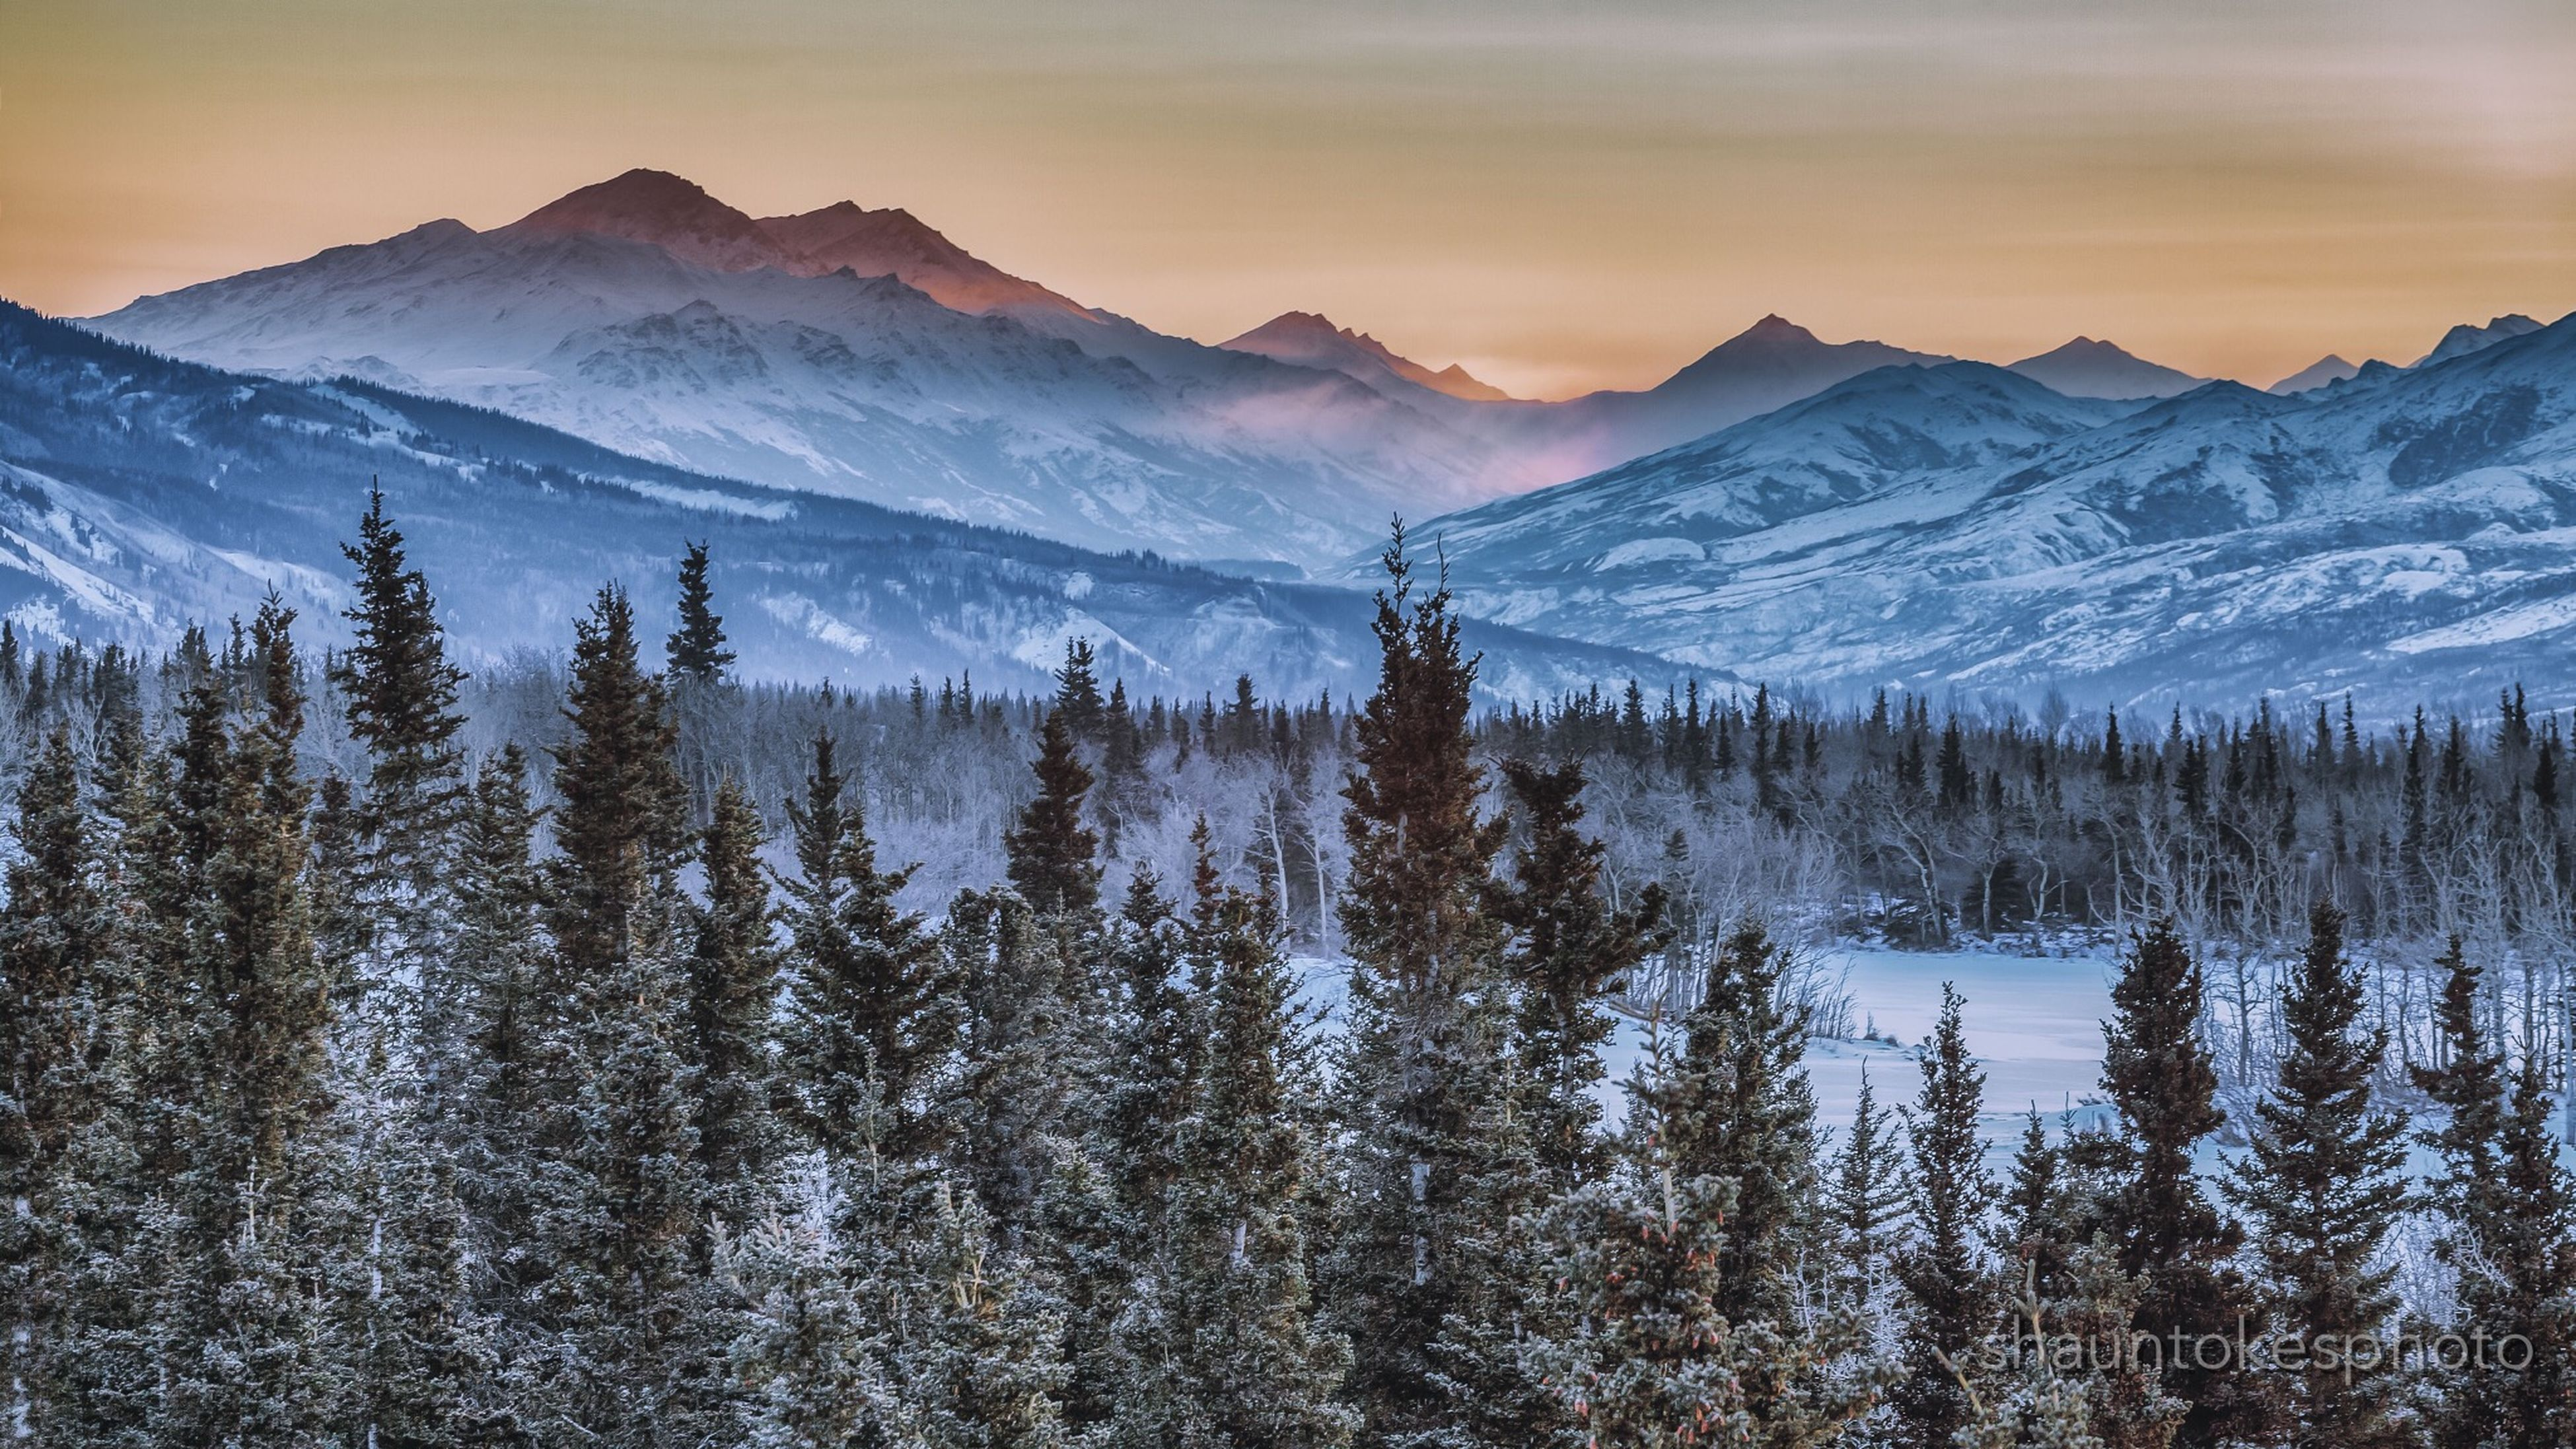 snow, winter, cold temperature, mountain, season, tranquil scene, tranquility, mountain range, scenics, beauty in nature, weather, snowcapped mountain, nature, covering, landscape, sky, frozen, non-urban scene, idyllic, sunset